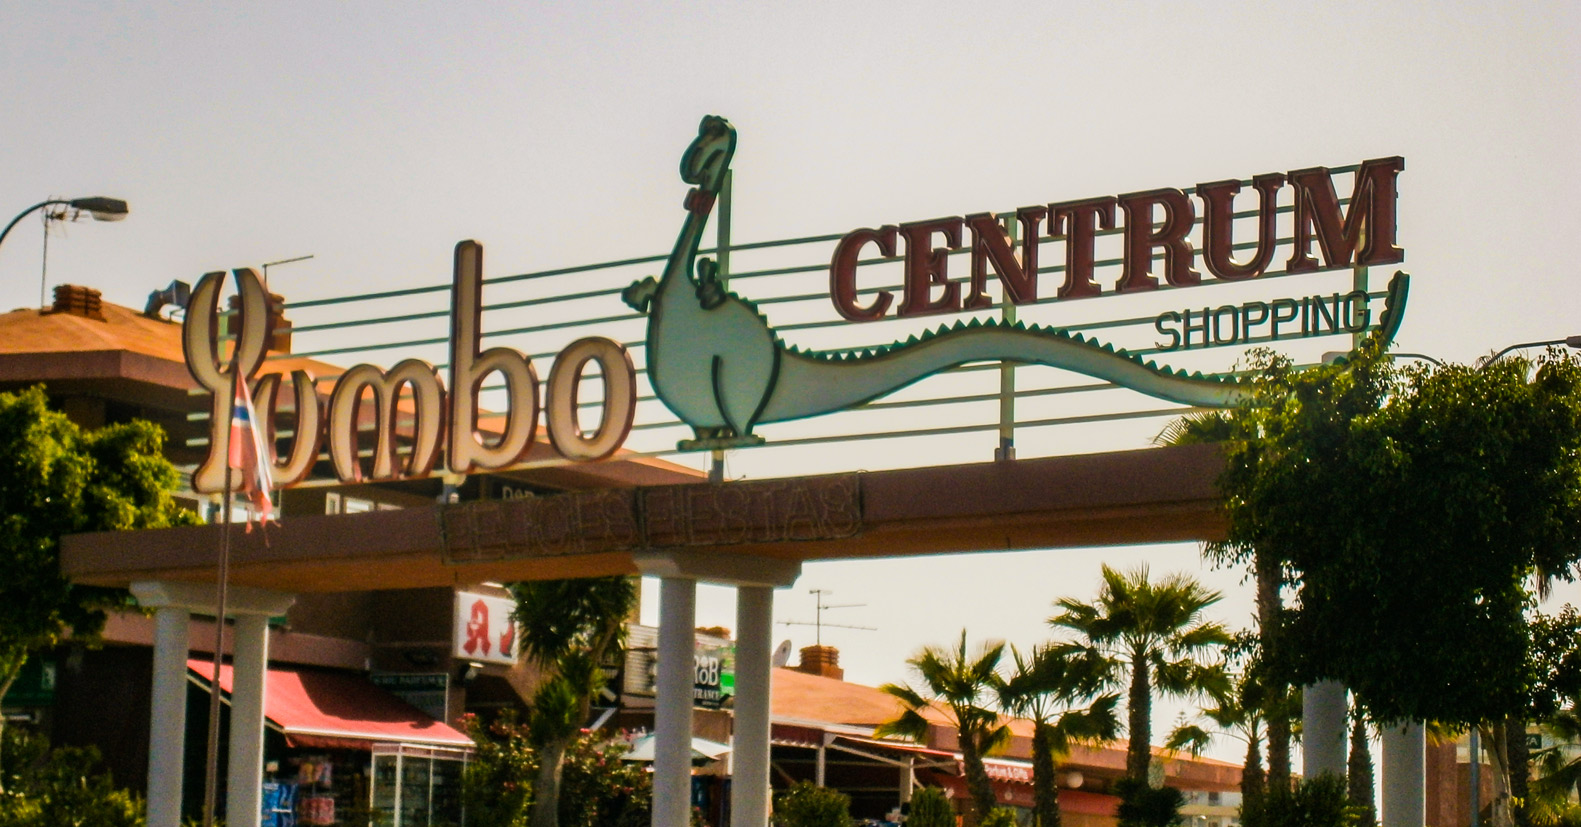 9.Yumbo Centre Sign